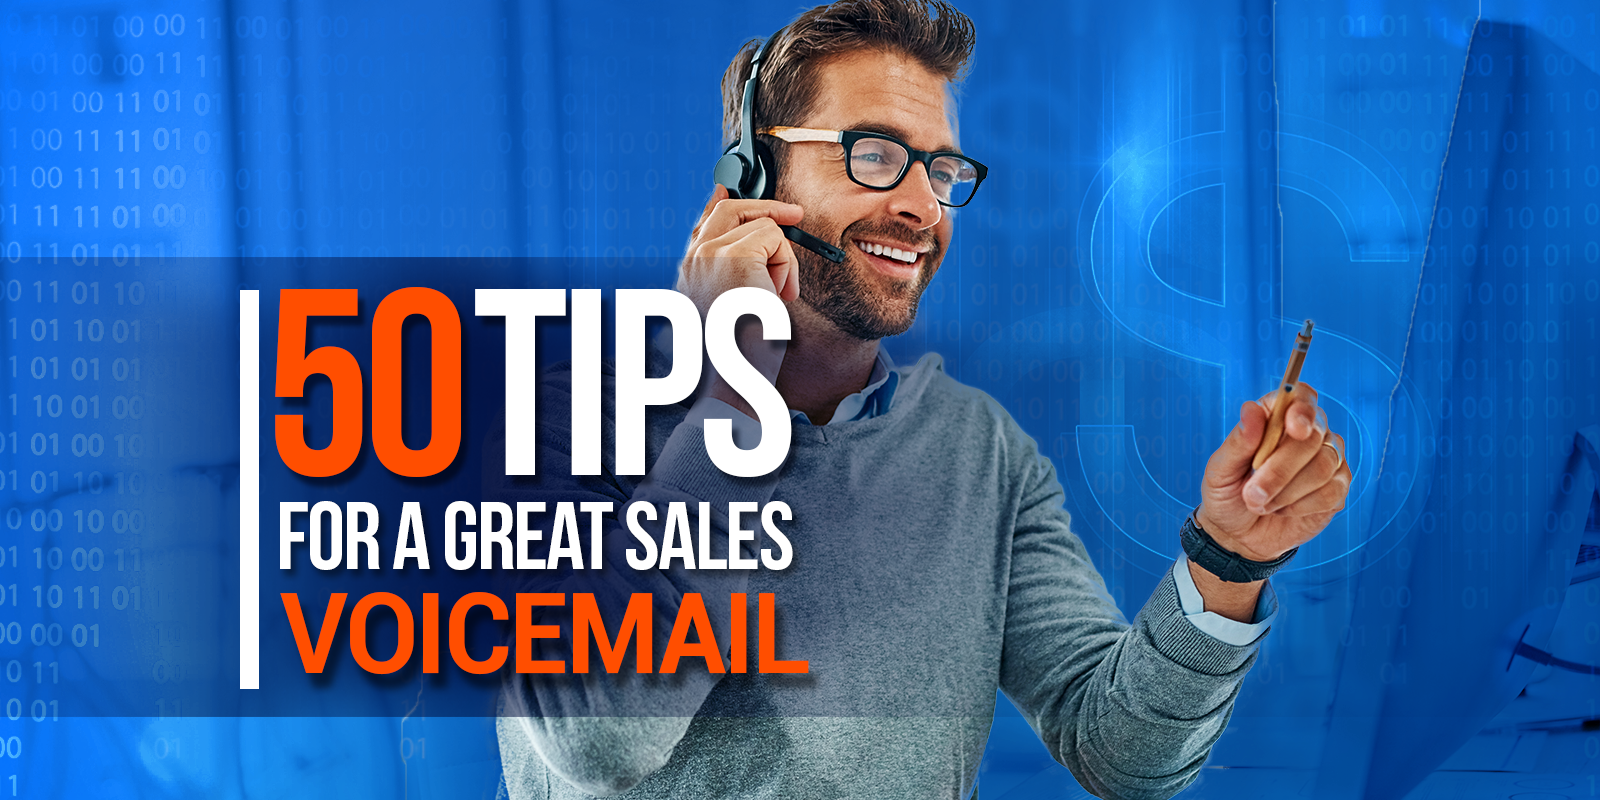 50 Tips for a Great Sales Voicemail